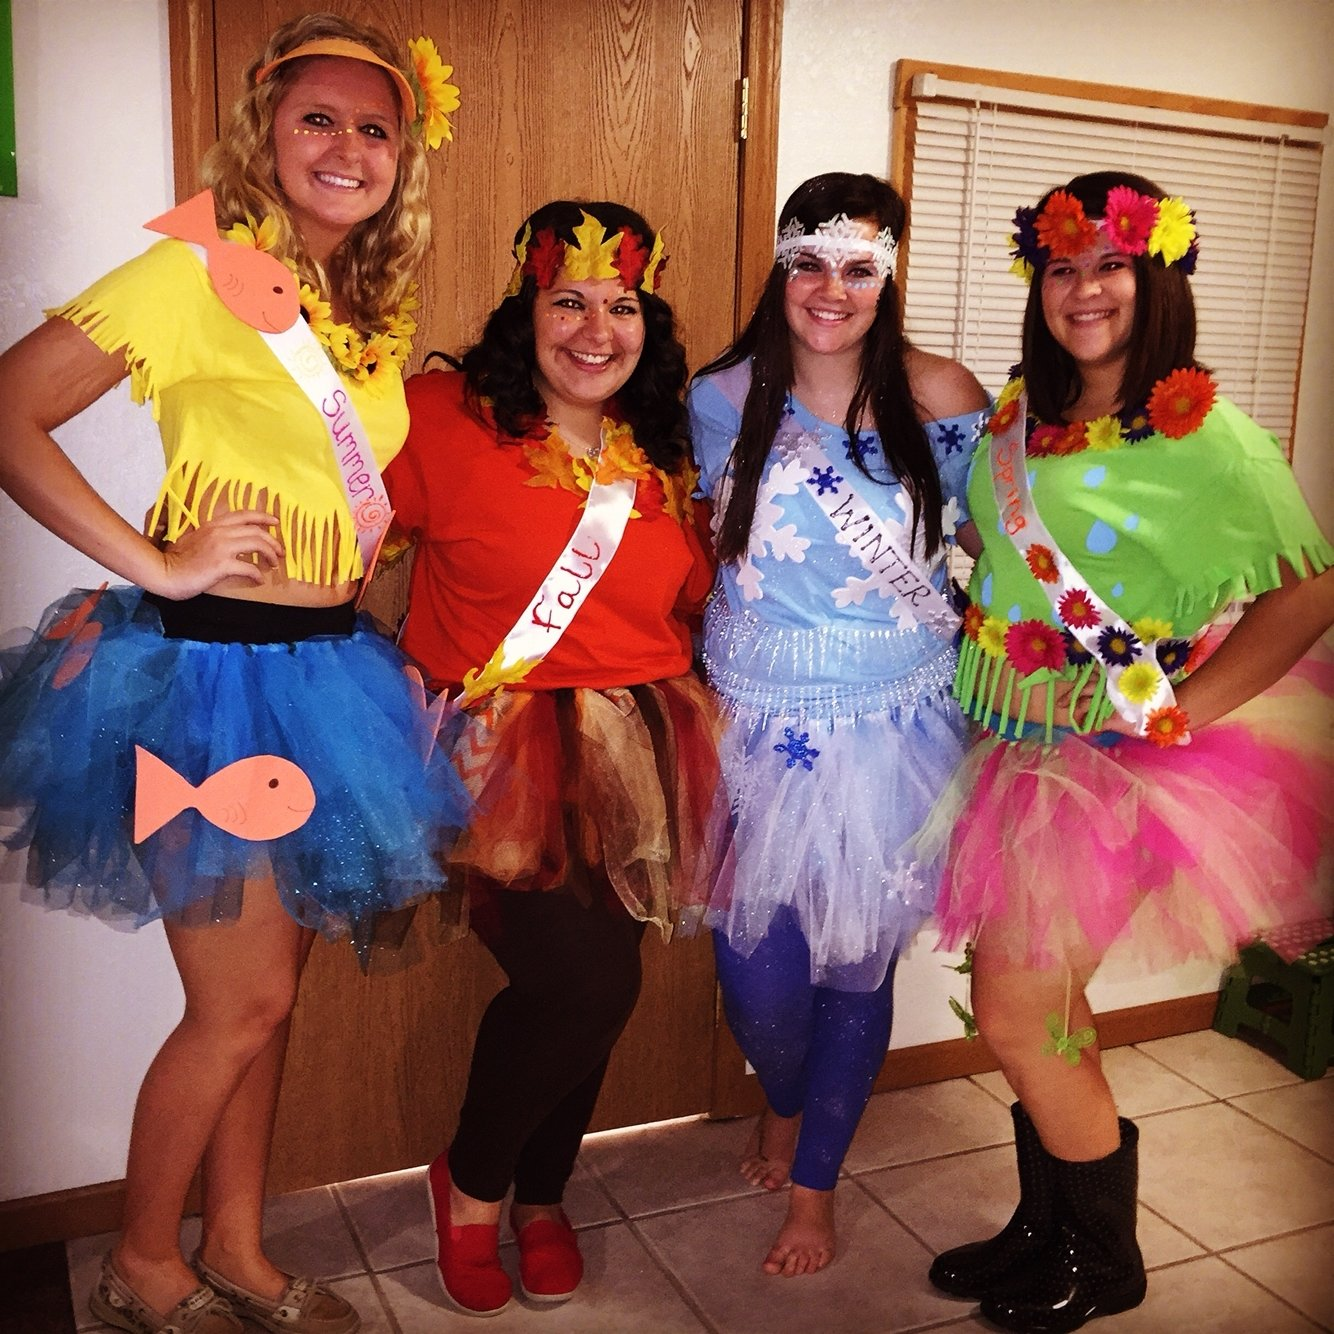 10 Amazing Costume Ideas For Groups Of 3 four seasons group halloween costume 3 pinterest group 5